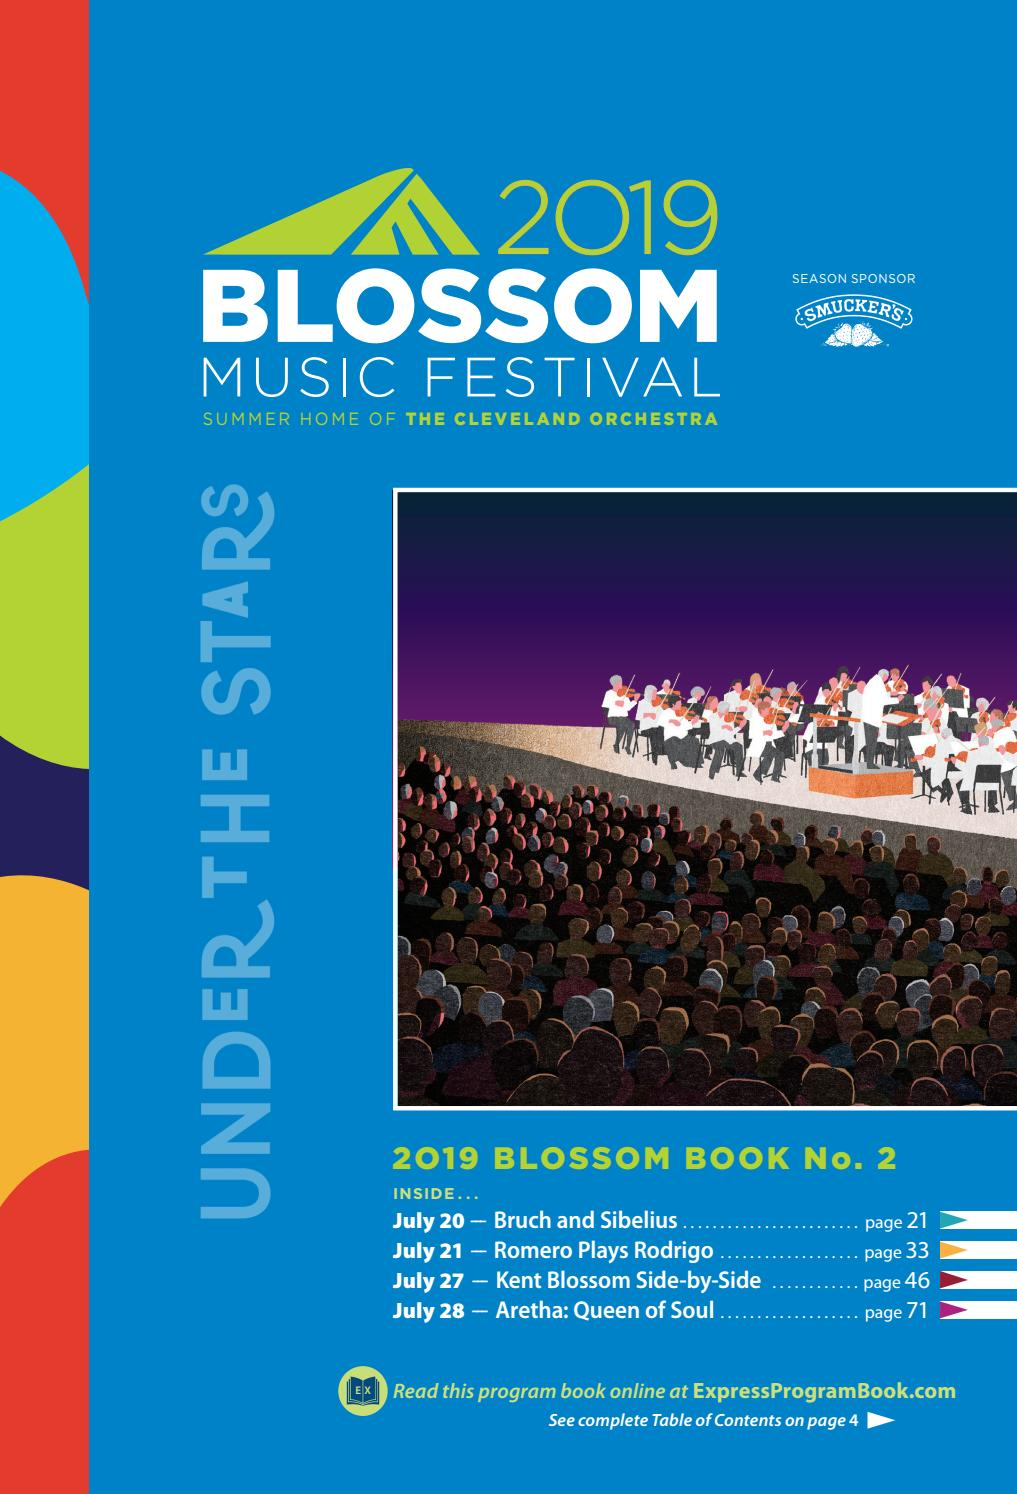 Kinder Second Hand Laden Leipzig Blossom Music Festival 2019 Book 2 By Live Publishing Issuu